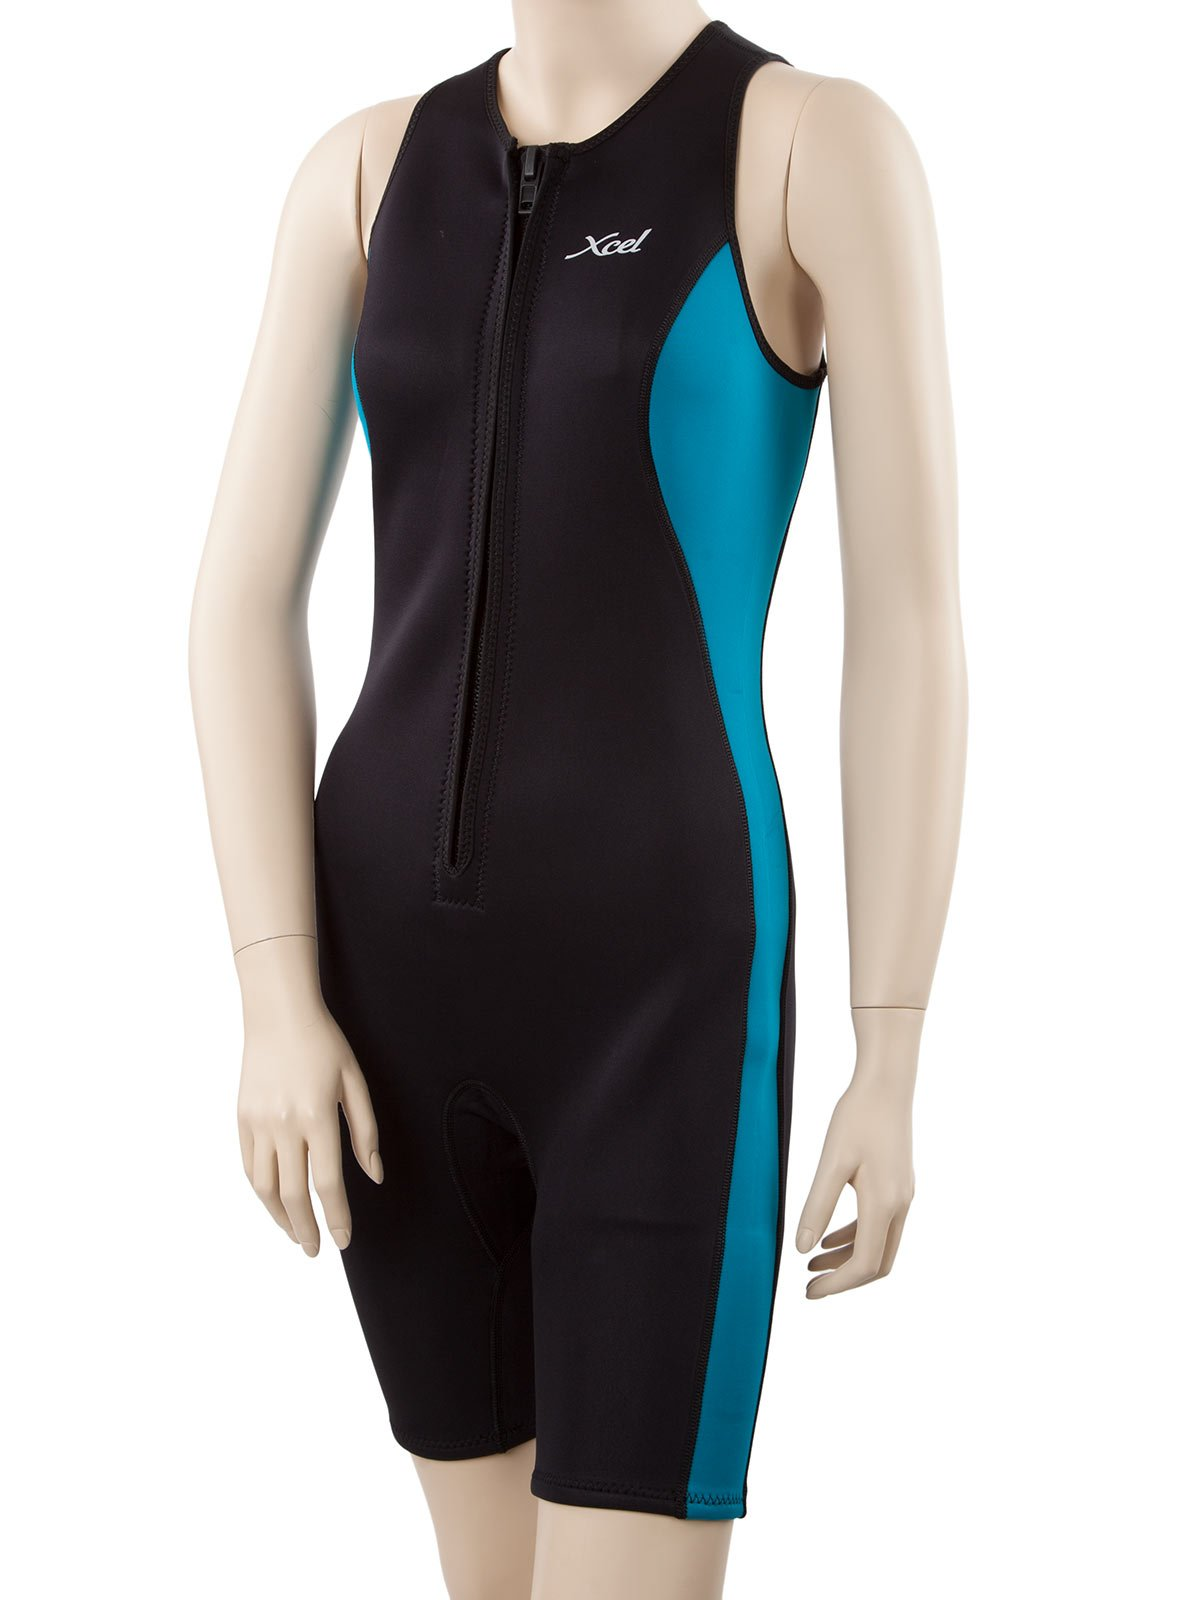 XCEL Women's Racerback Shorty Wetsuit 12 Tall Black/Wild Peacock by XCEL